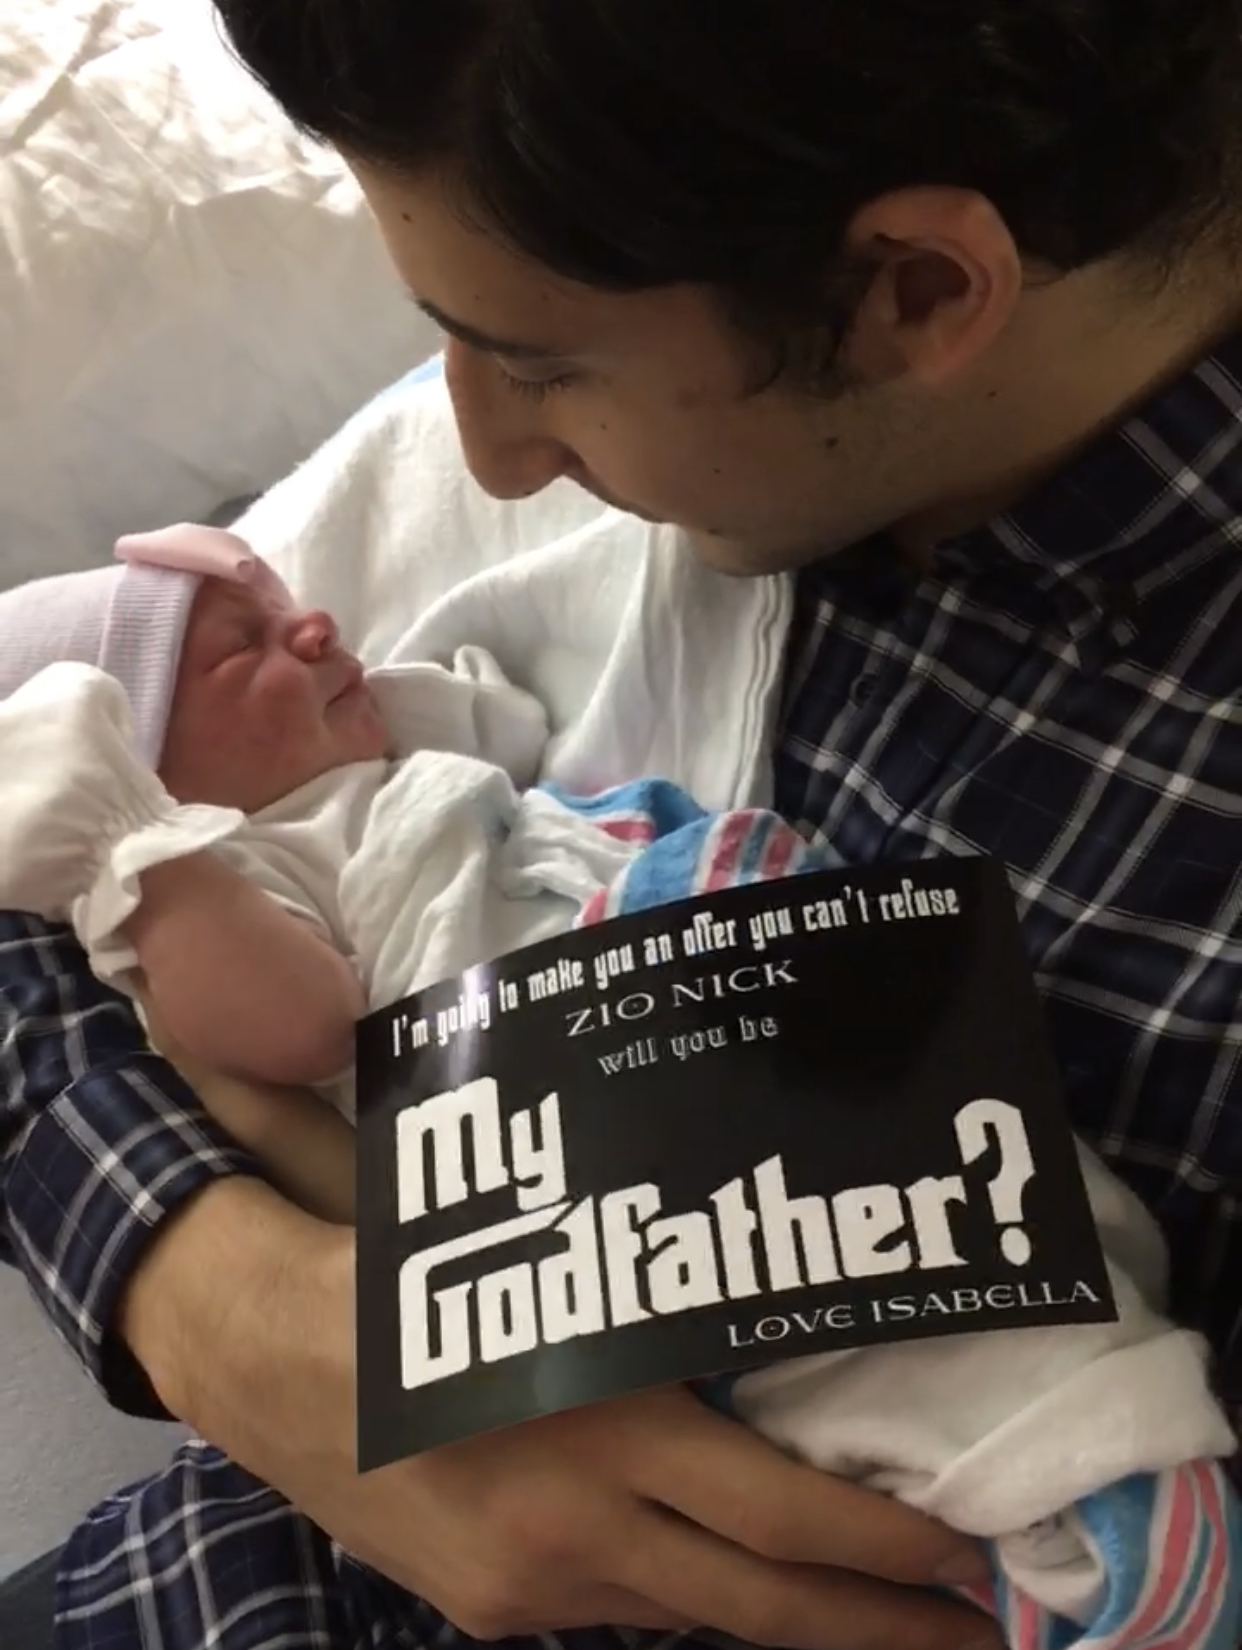 We asked my brother to be the Godfather. He was so happy, emotional, and so in love with Bella. He's the best Godfather!